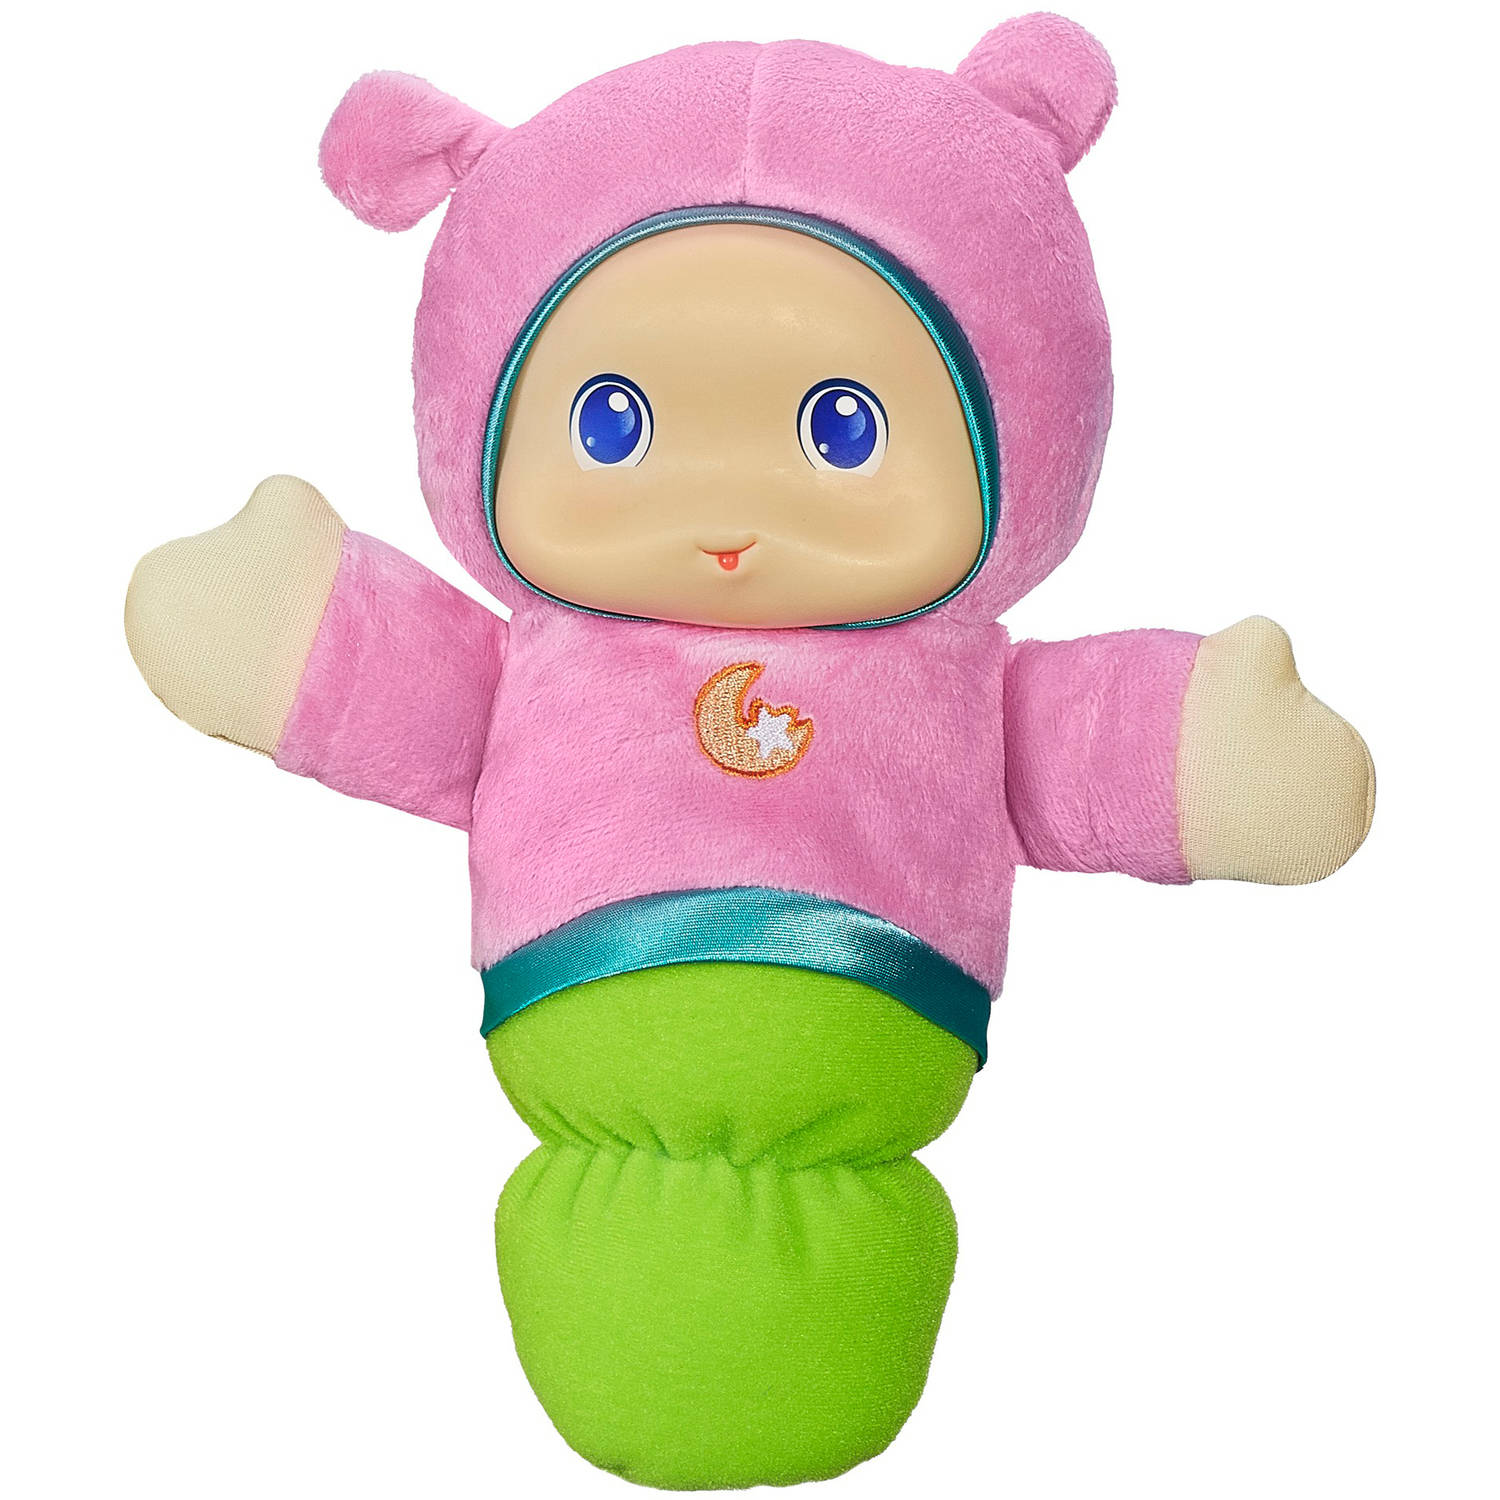 Playskool Play Favorites Lullaby Gloworm Toy, Pink